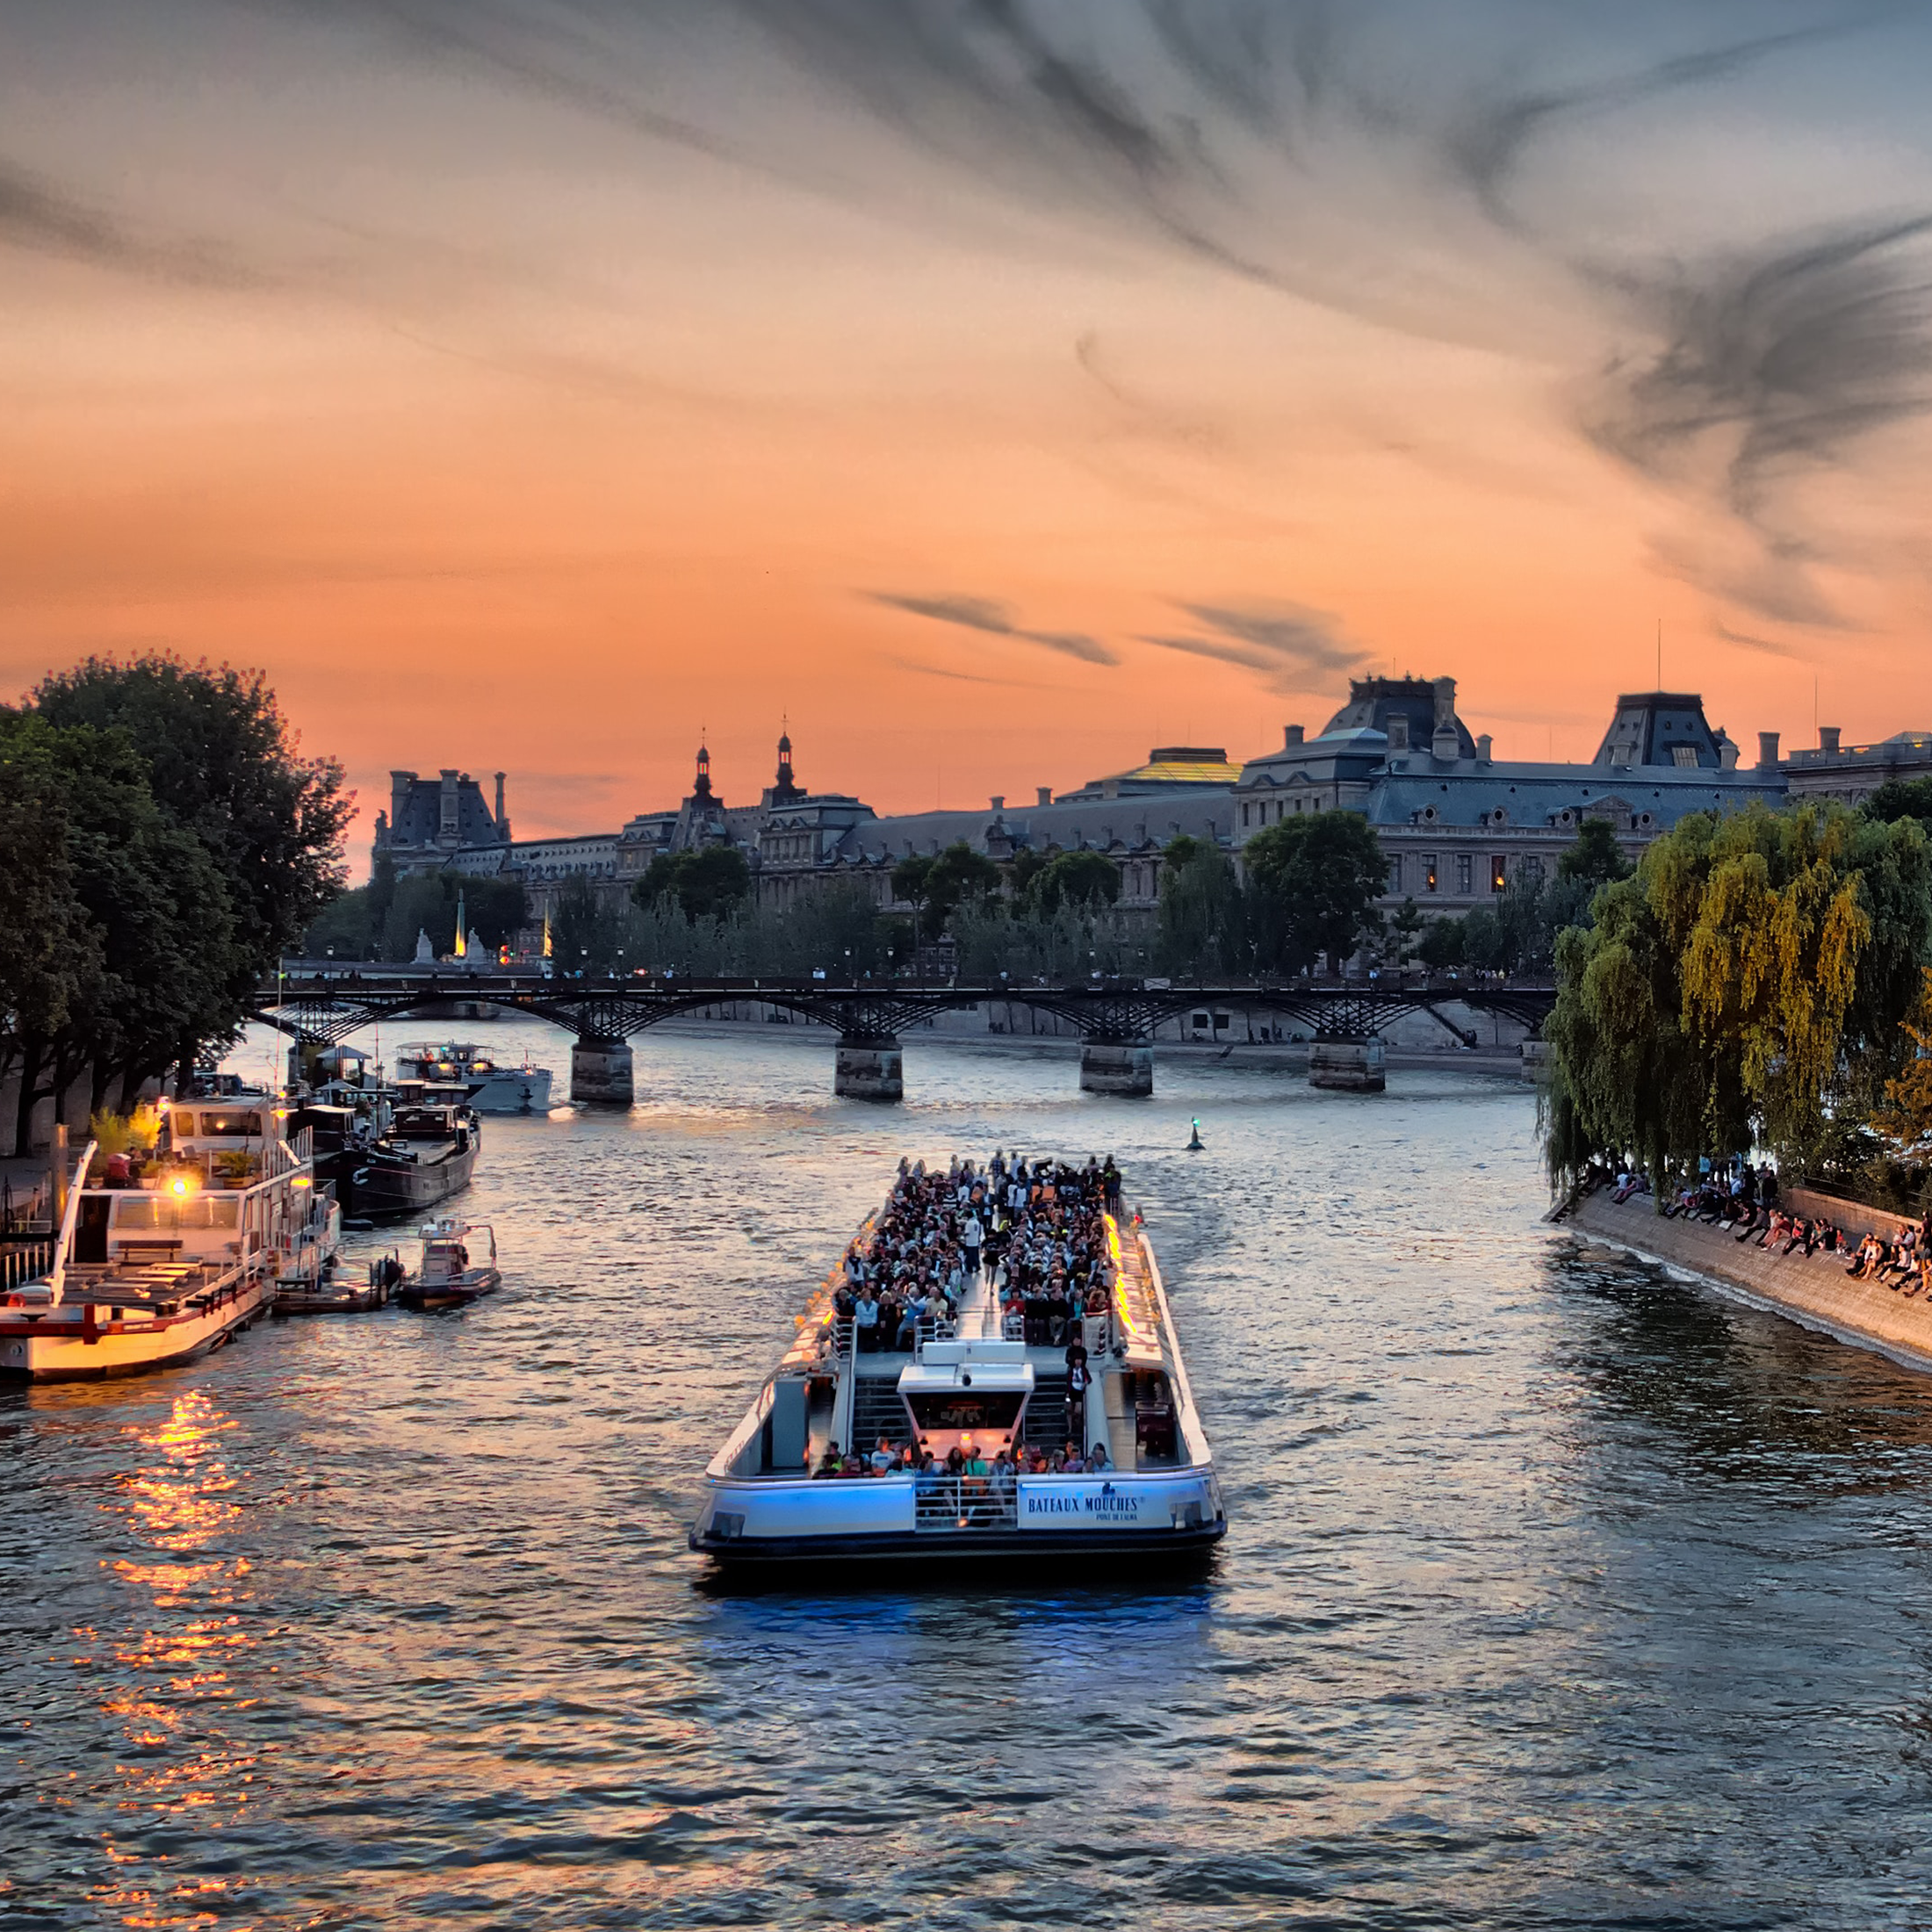 Boat rides on the River Seine